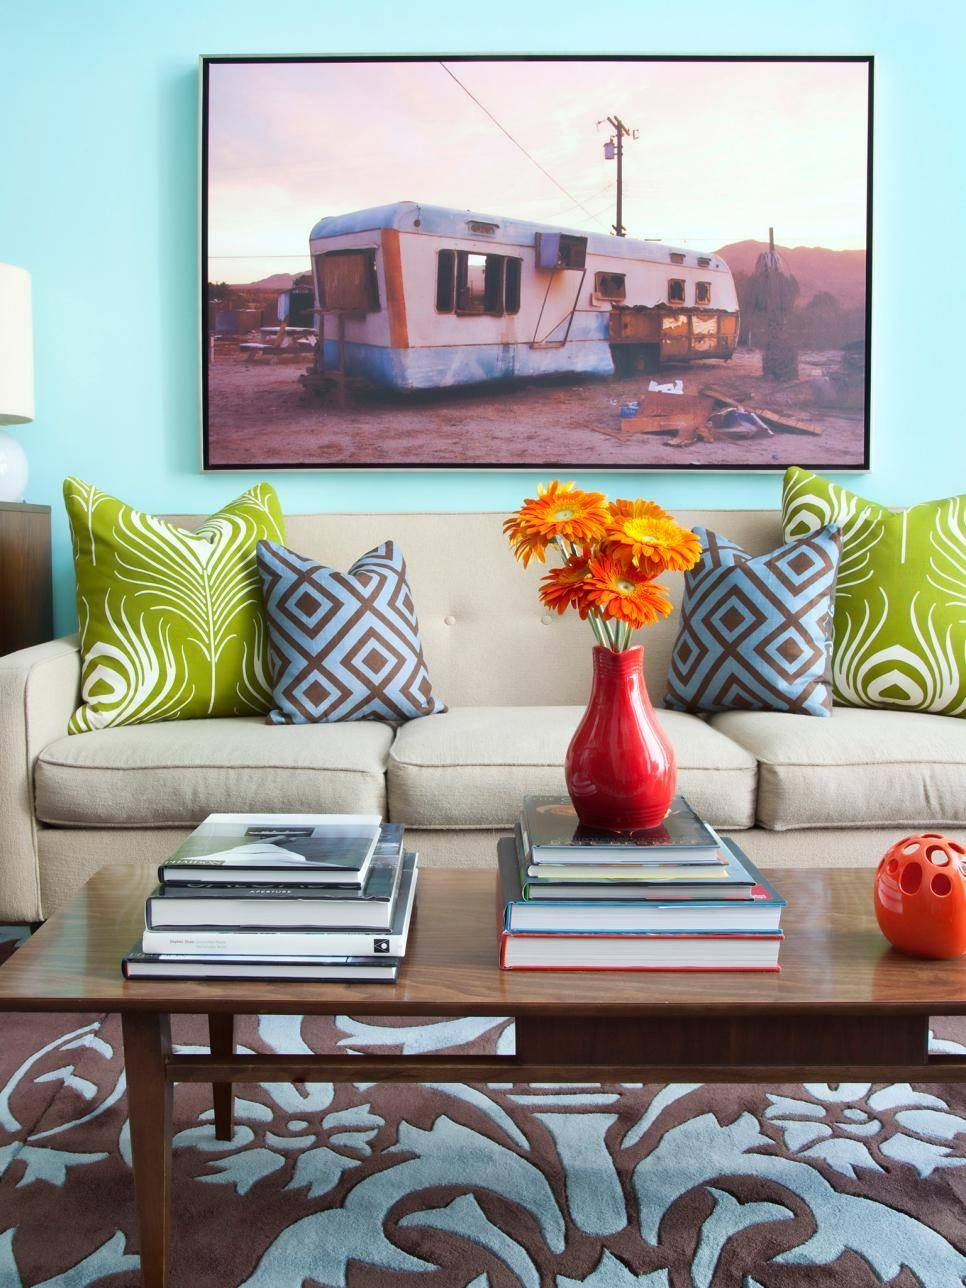 Design Behind The Living Room Sofa | Hgtv In Best And Newest Wall Pictures For Living Room (View 8 of 20)